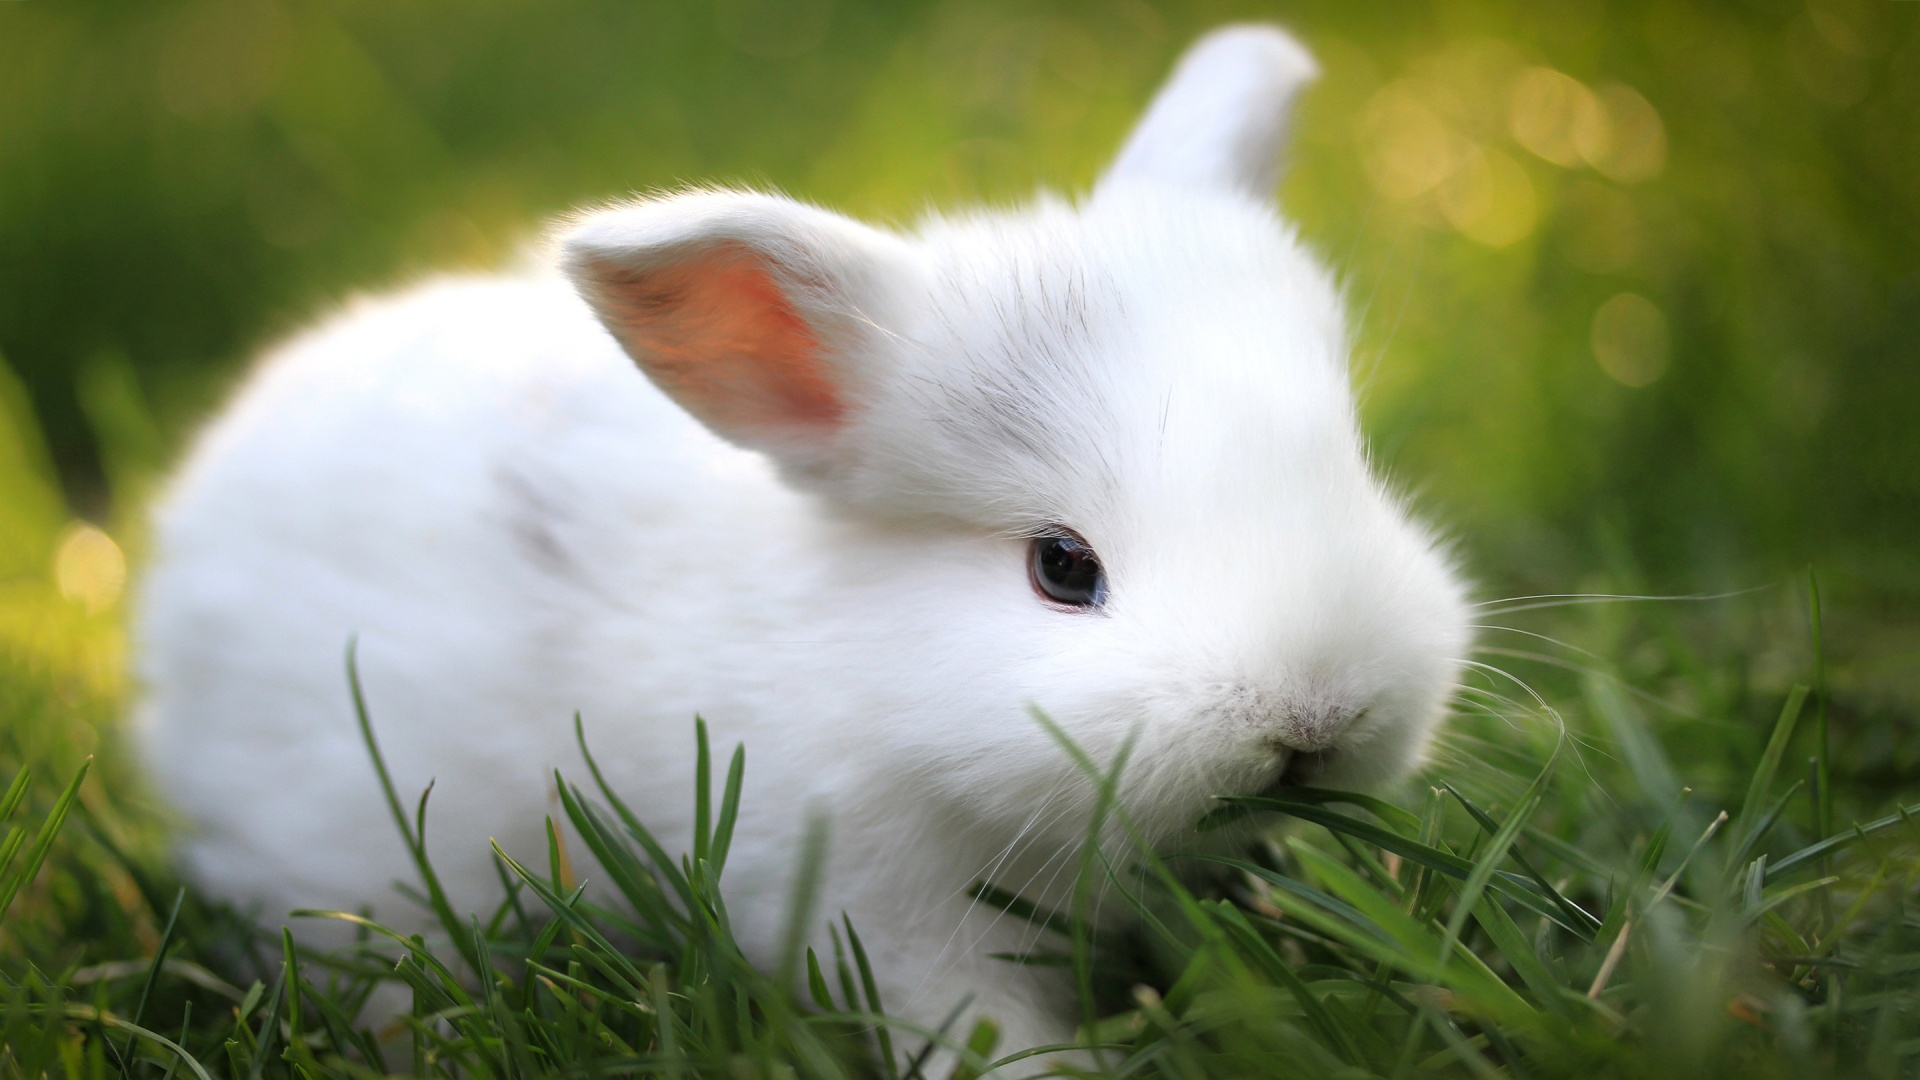 Gallery For gt Cute Baby Animal Wallpapers 1920x1080